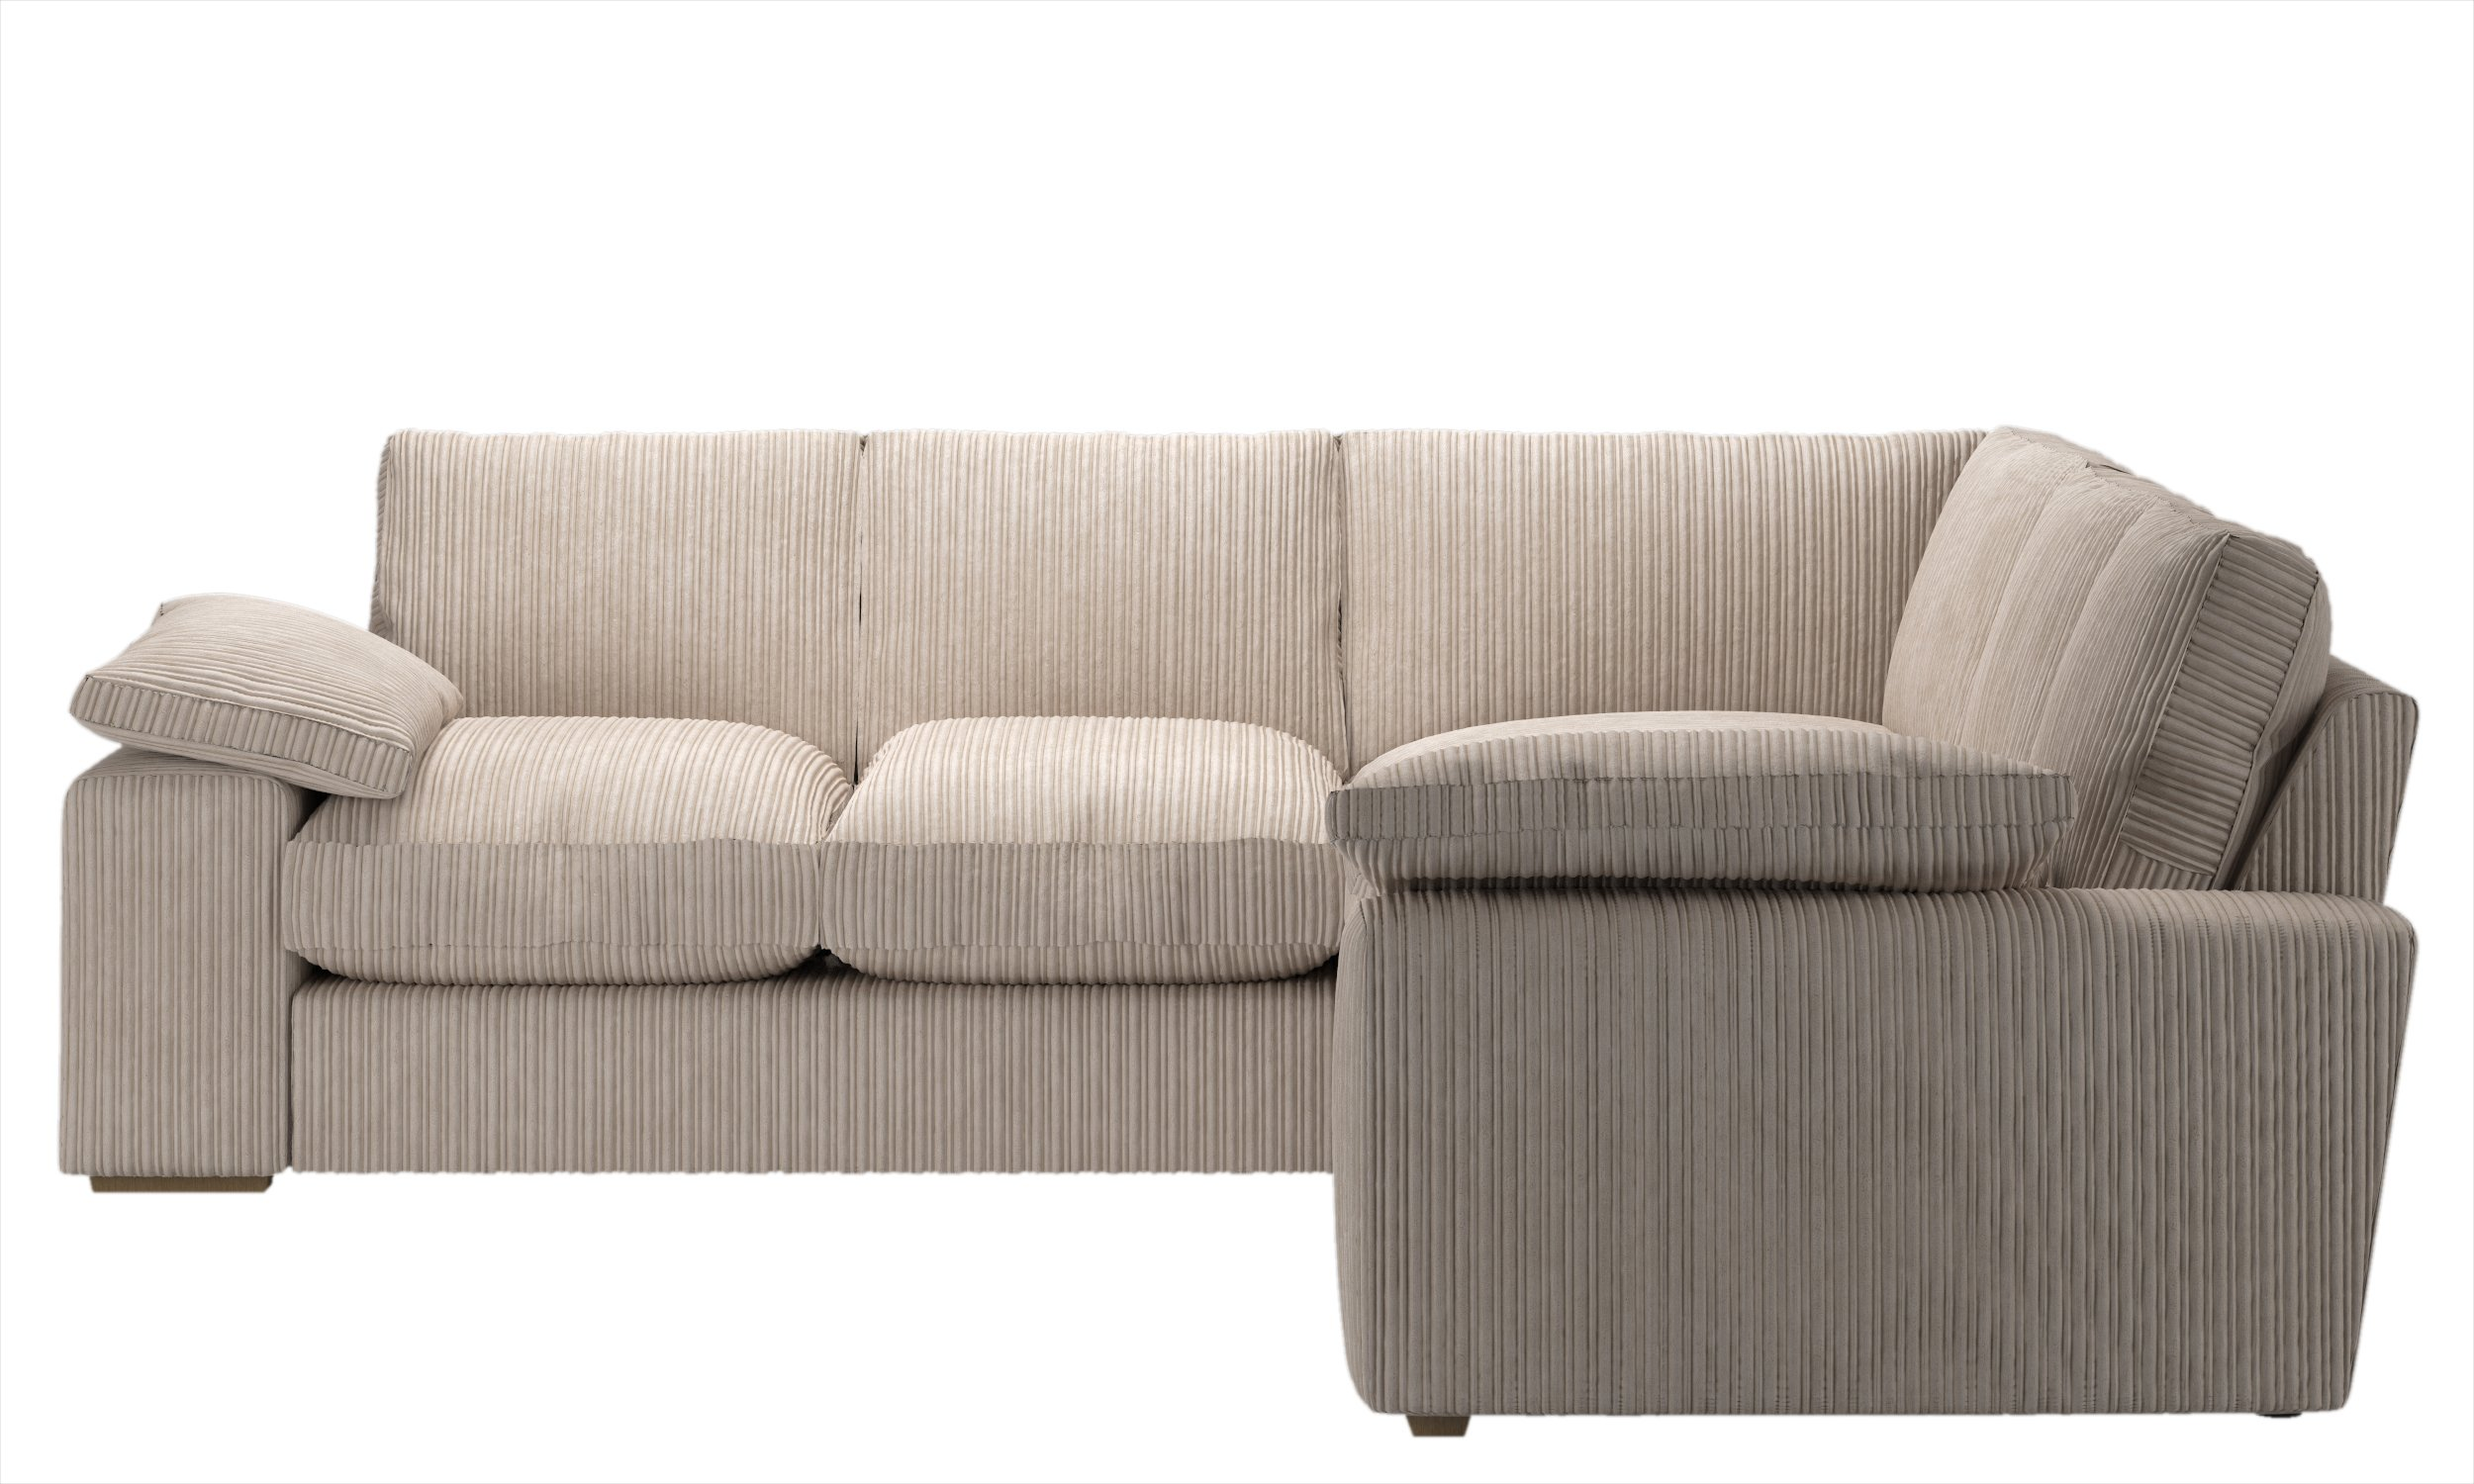 Collection phoebe extra large dual face corner sofa cream for Phoebe corner sofa